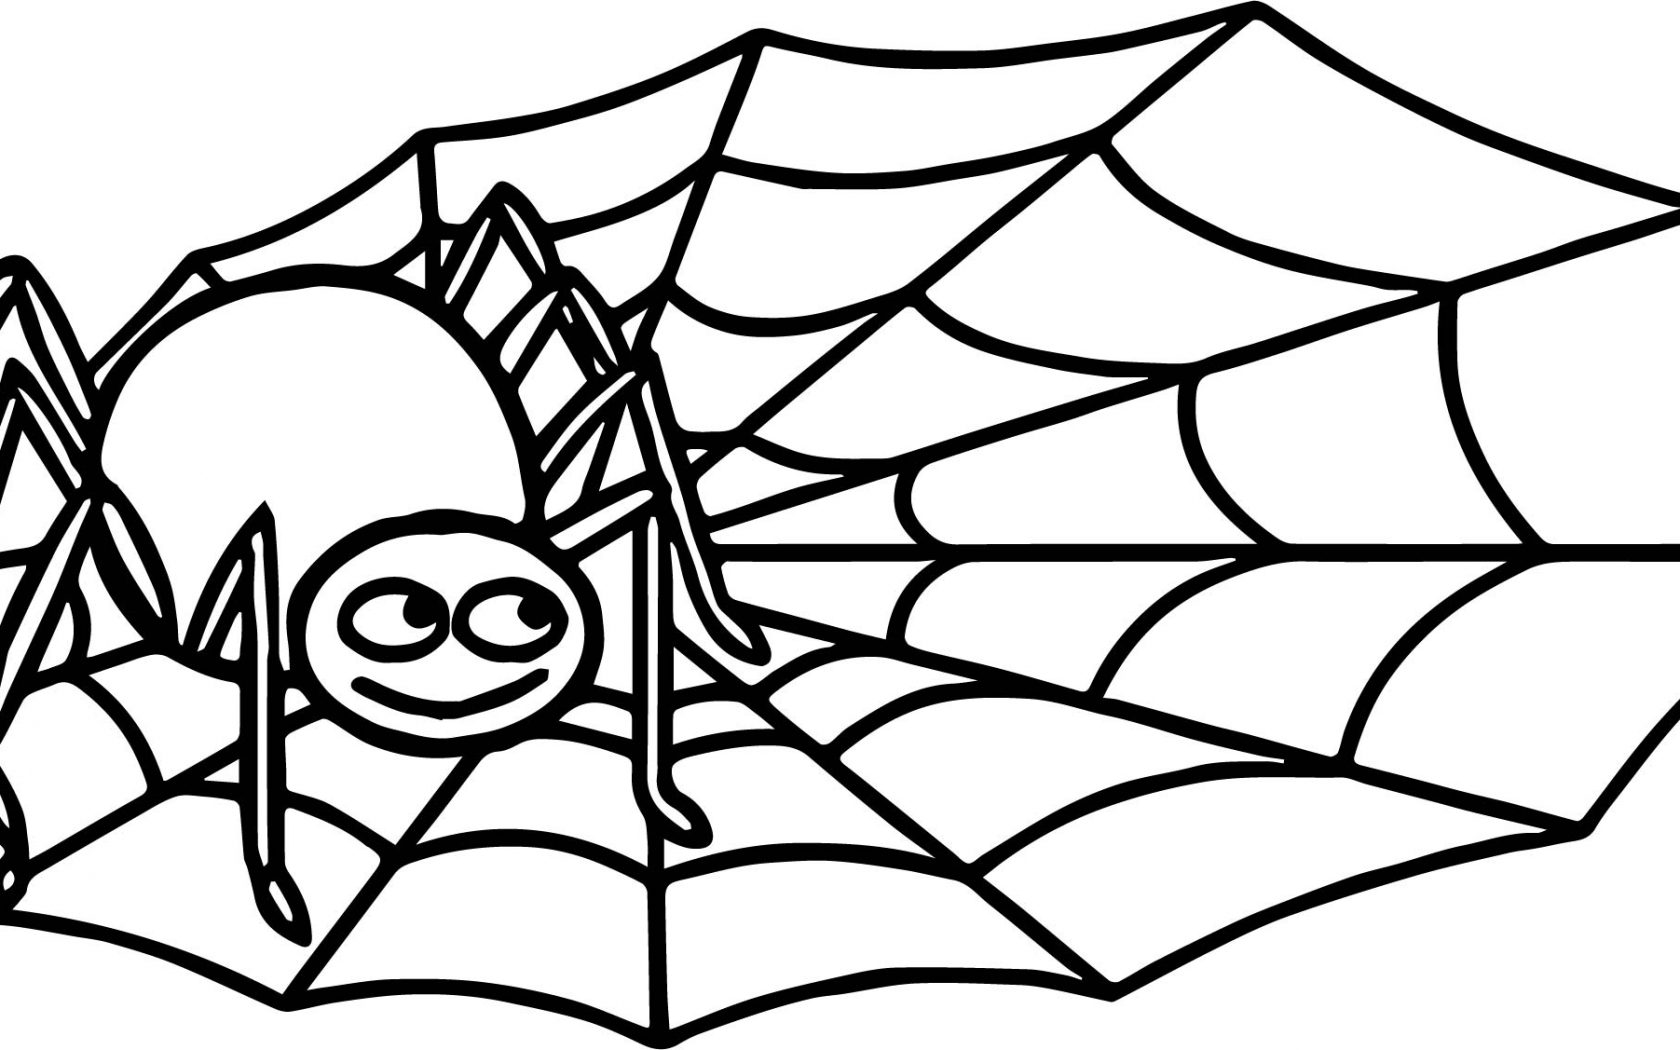 1680x1050 Incy Wincy Spider Coloring Page Free Printable Animals Pages